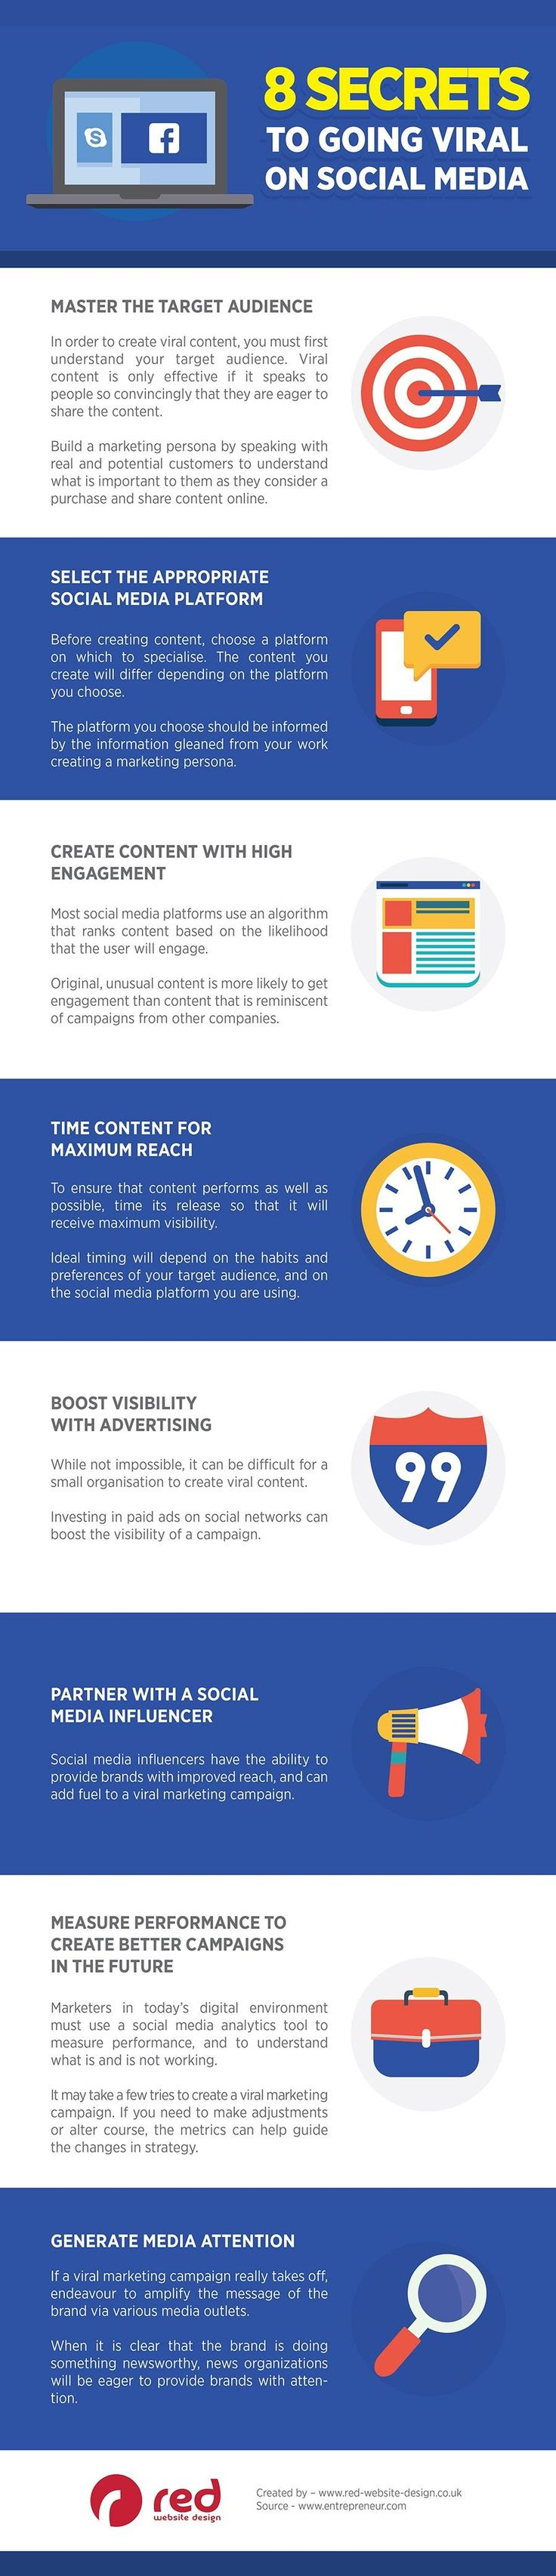 Advertising-Infographics-8-Secrets-to-Going-Viral-on-Social Advertising Infographics : 8 Secrets to Going Viral on Social Media - #Infographic